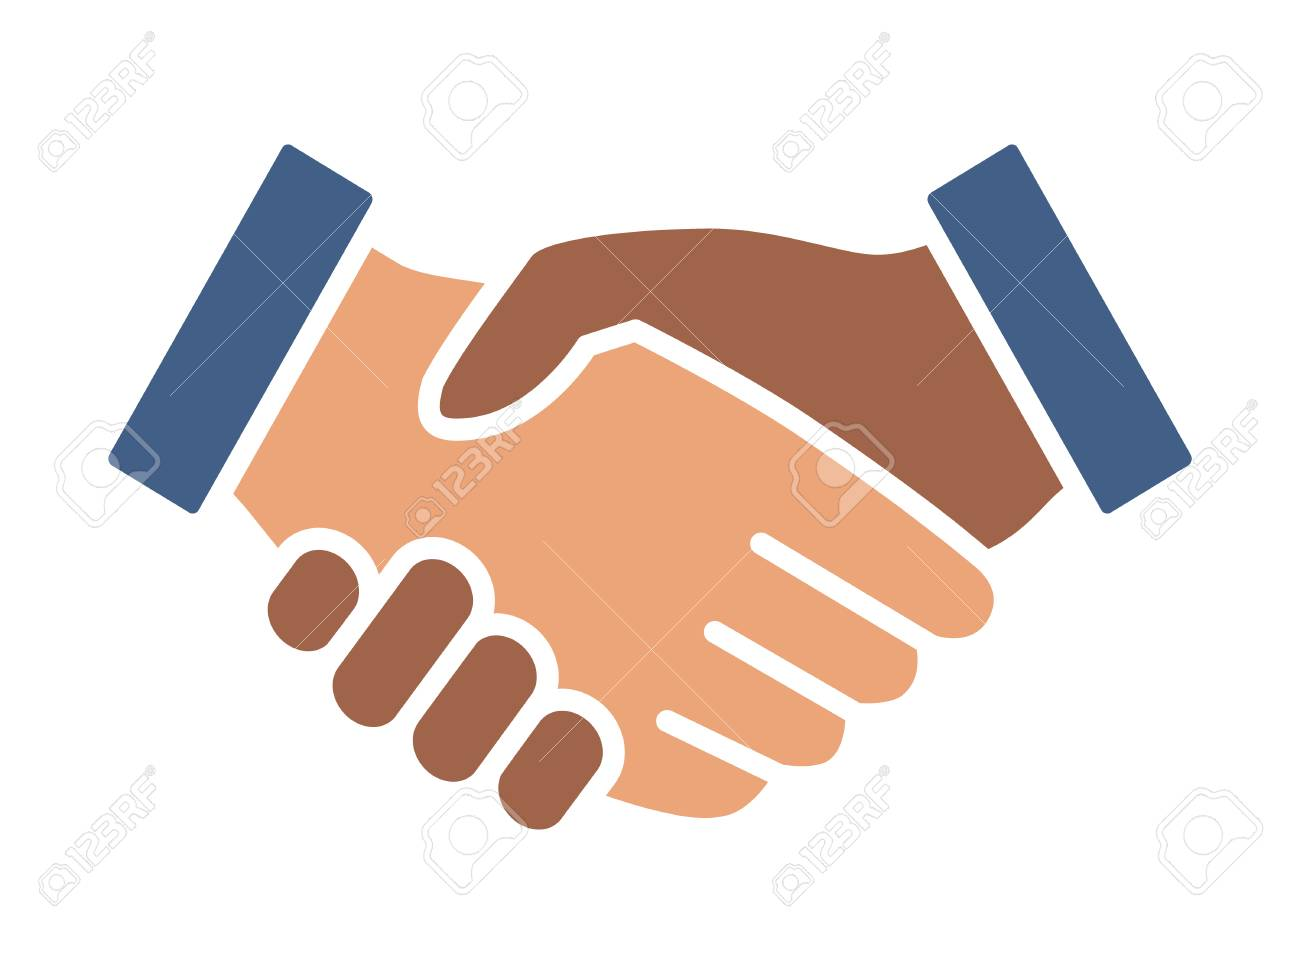 Black And White Handshake Or Shaking Hands In Unity And Peace Royalty Free Cliparts Vectors And Stock Illustration Image 104522089